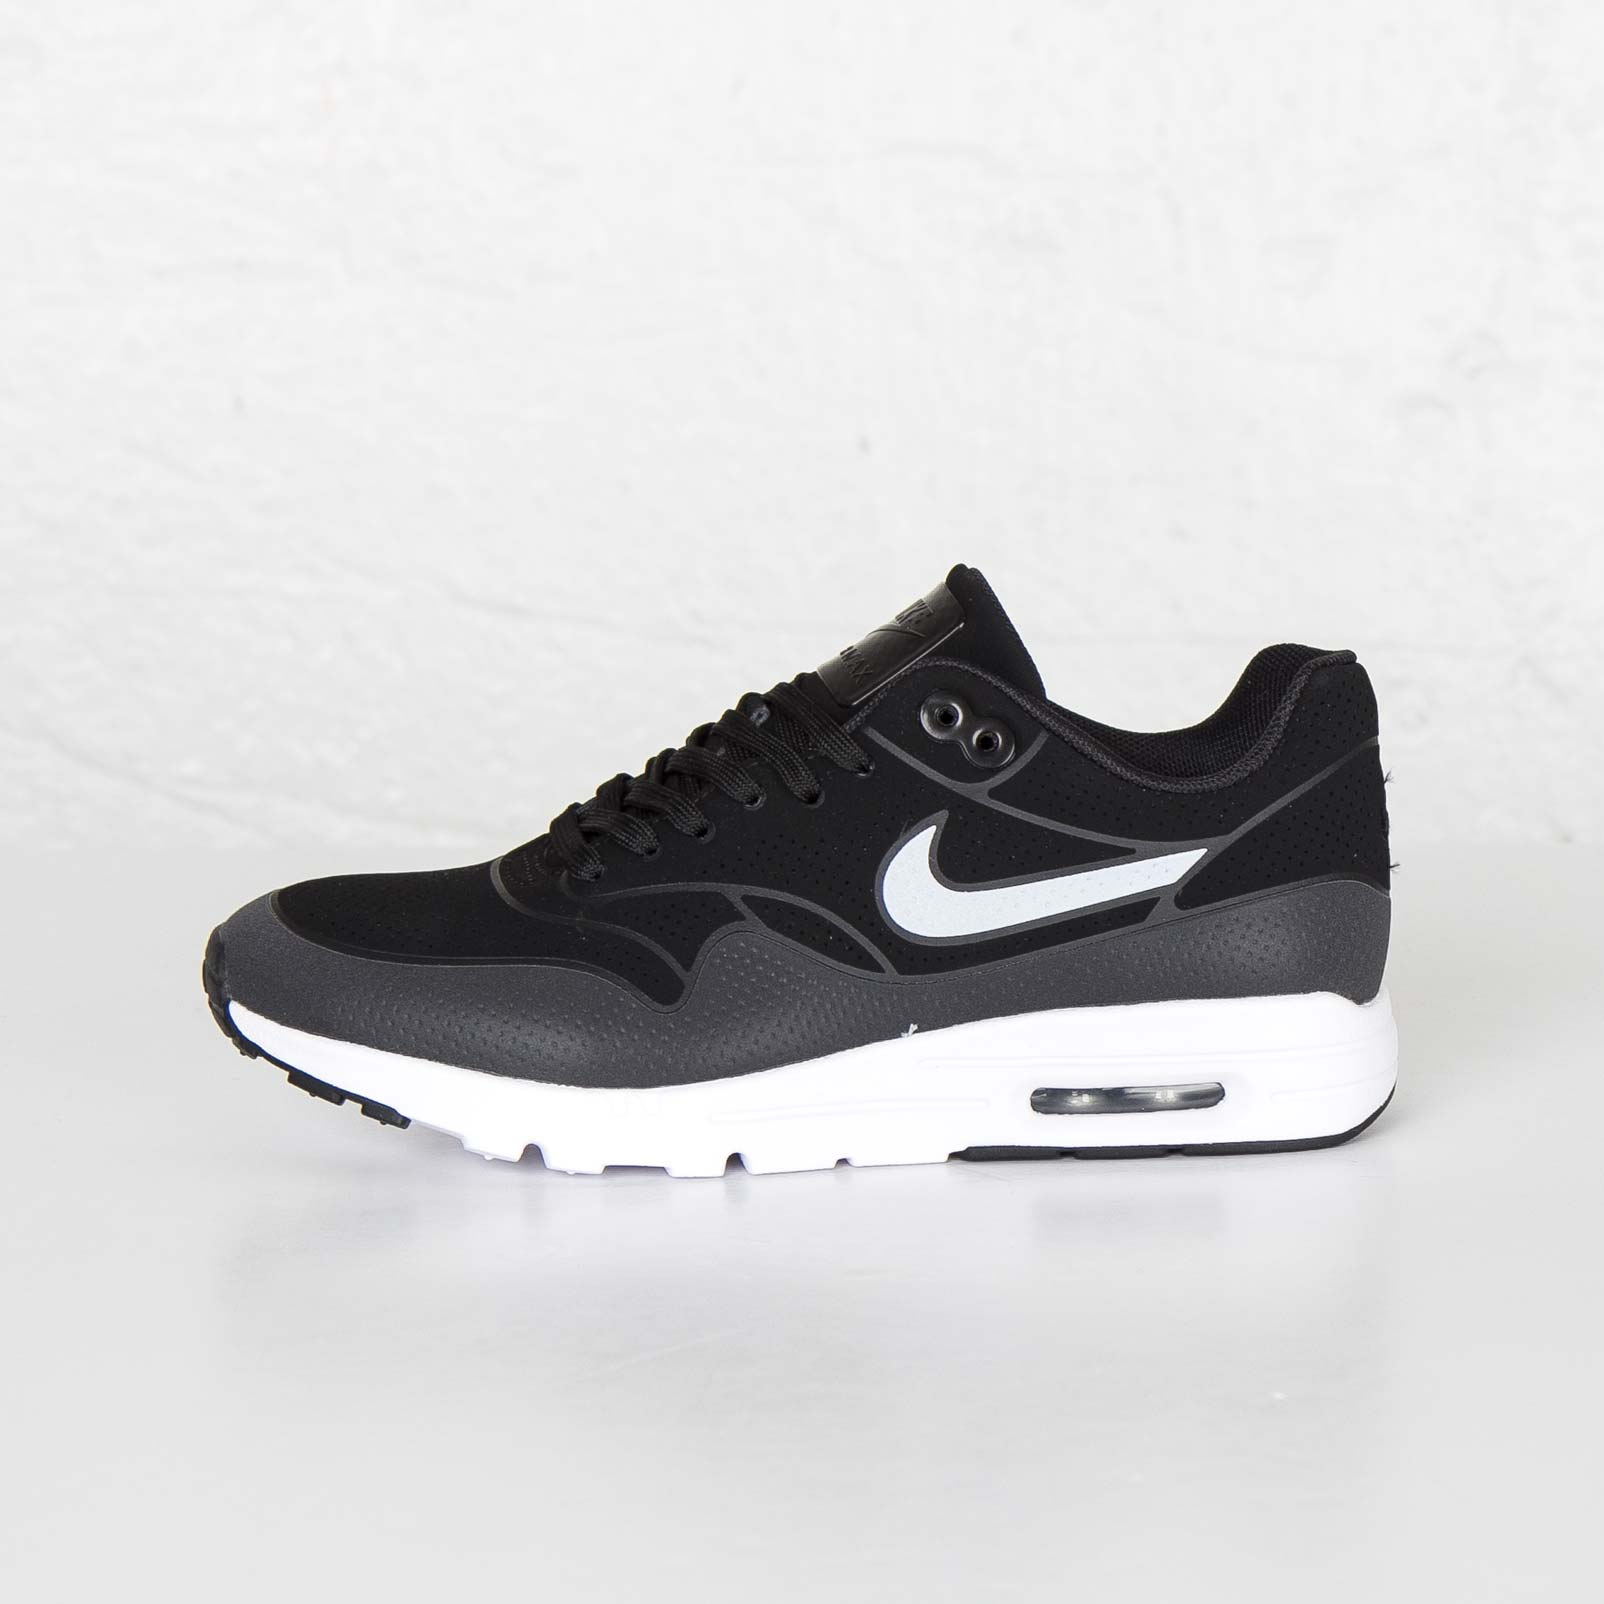 nike wmns air max 1 ultra moire 704995 001. Black Bedroom Furniture Sets. Home Design Ideas